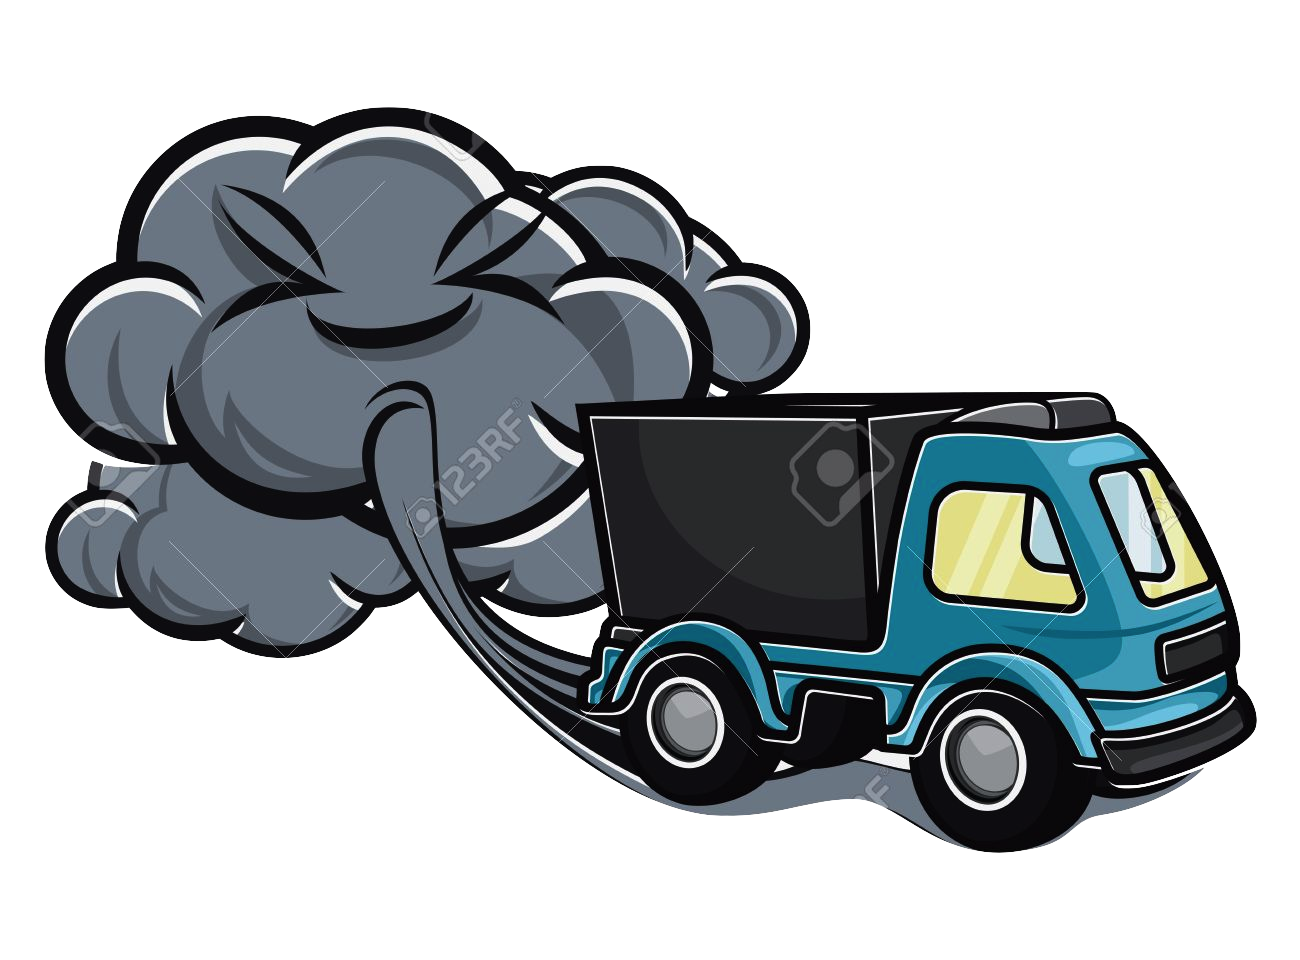 Car pollution clipart picture download 28+ Collection of Car Pollution Clipart Png | High quality, free ... picture download